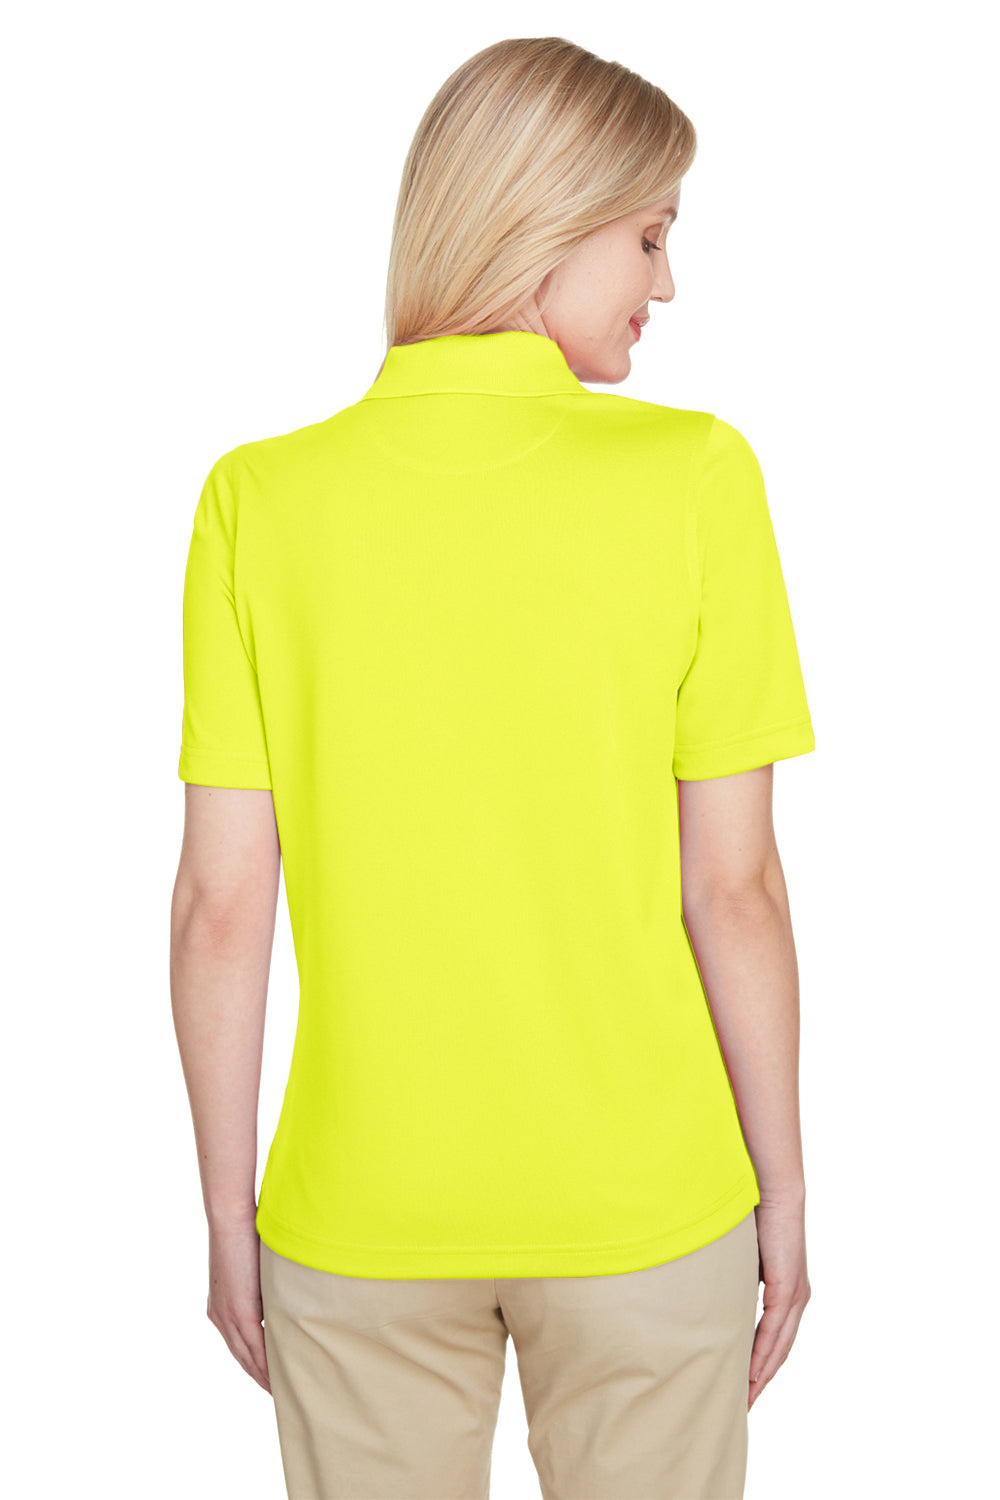 Harriton M348W Womens Advantage Performance Moisture Wicking Short Sleeve Polo Shirt Safety Yellow Back